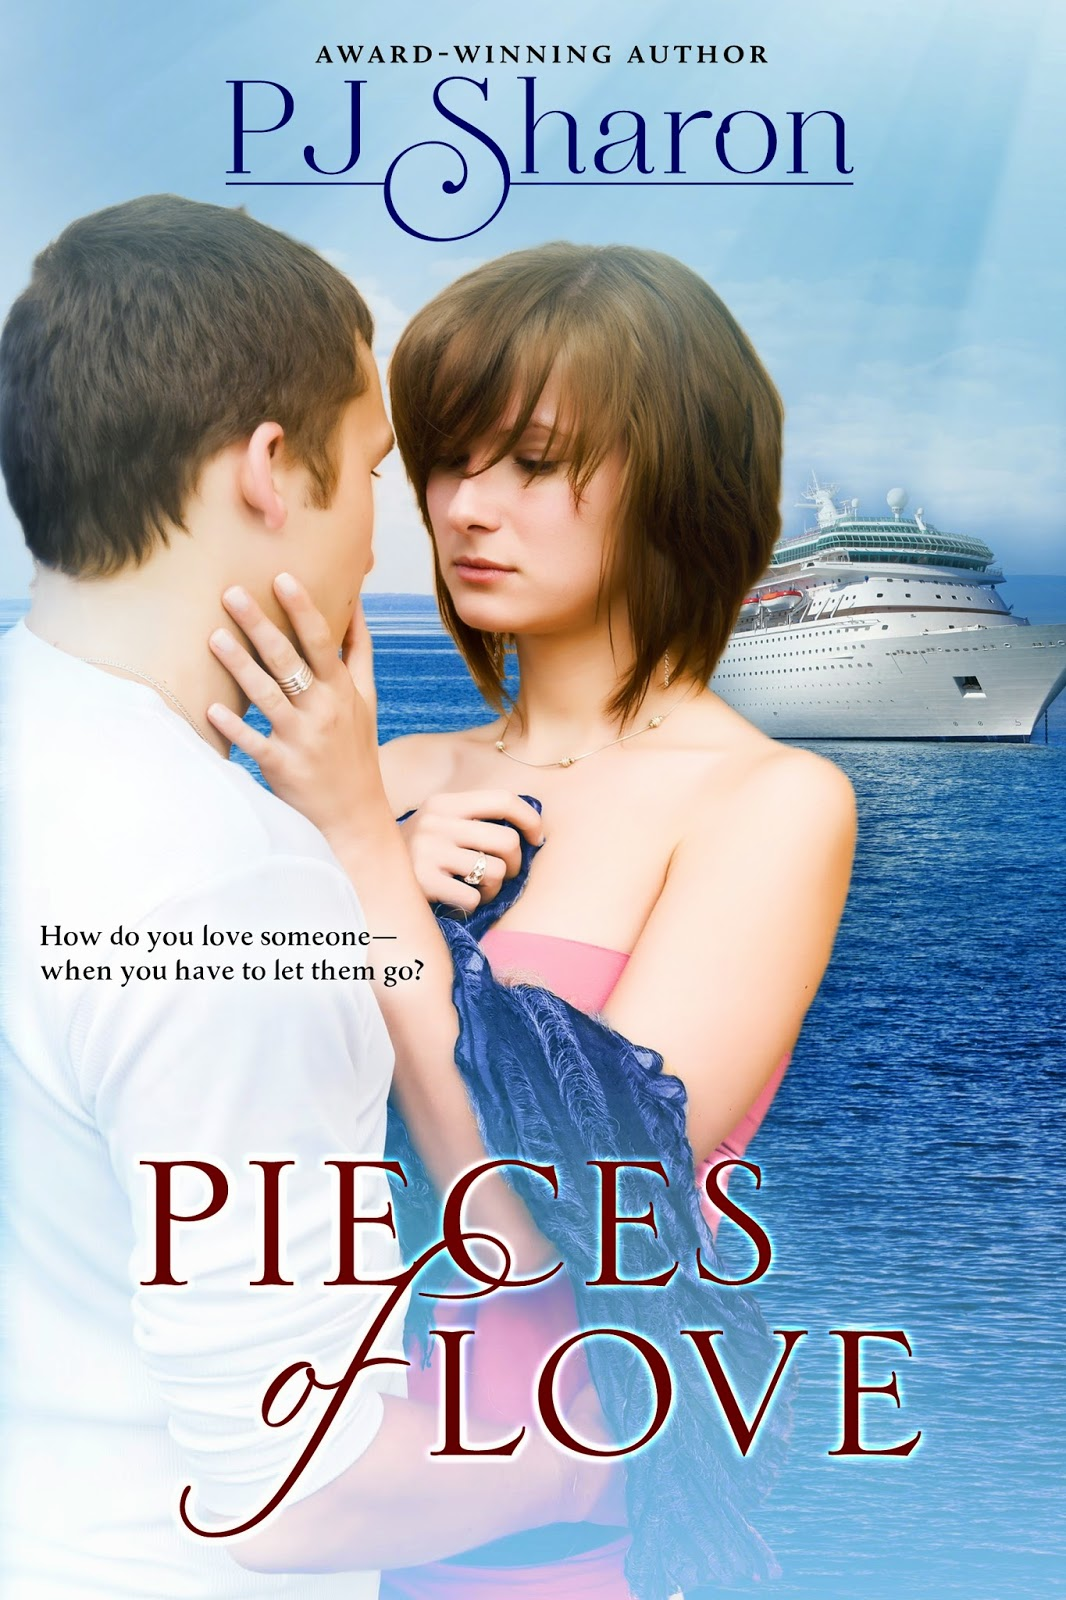 https://www.goodreads.com/book/show/21947073-pieces-of-love